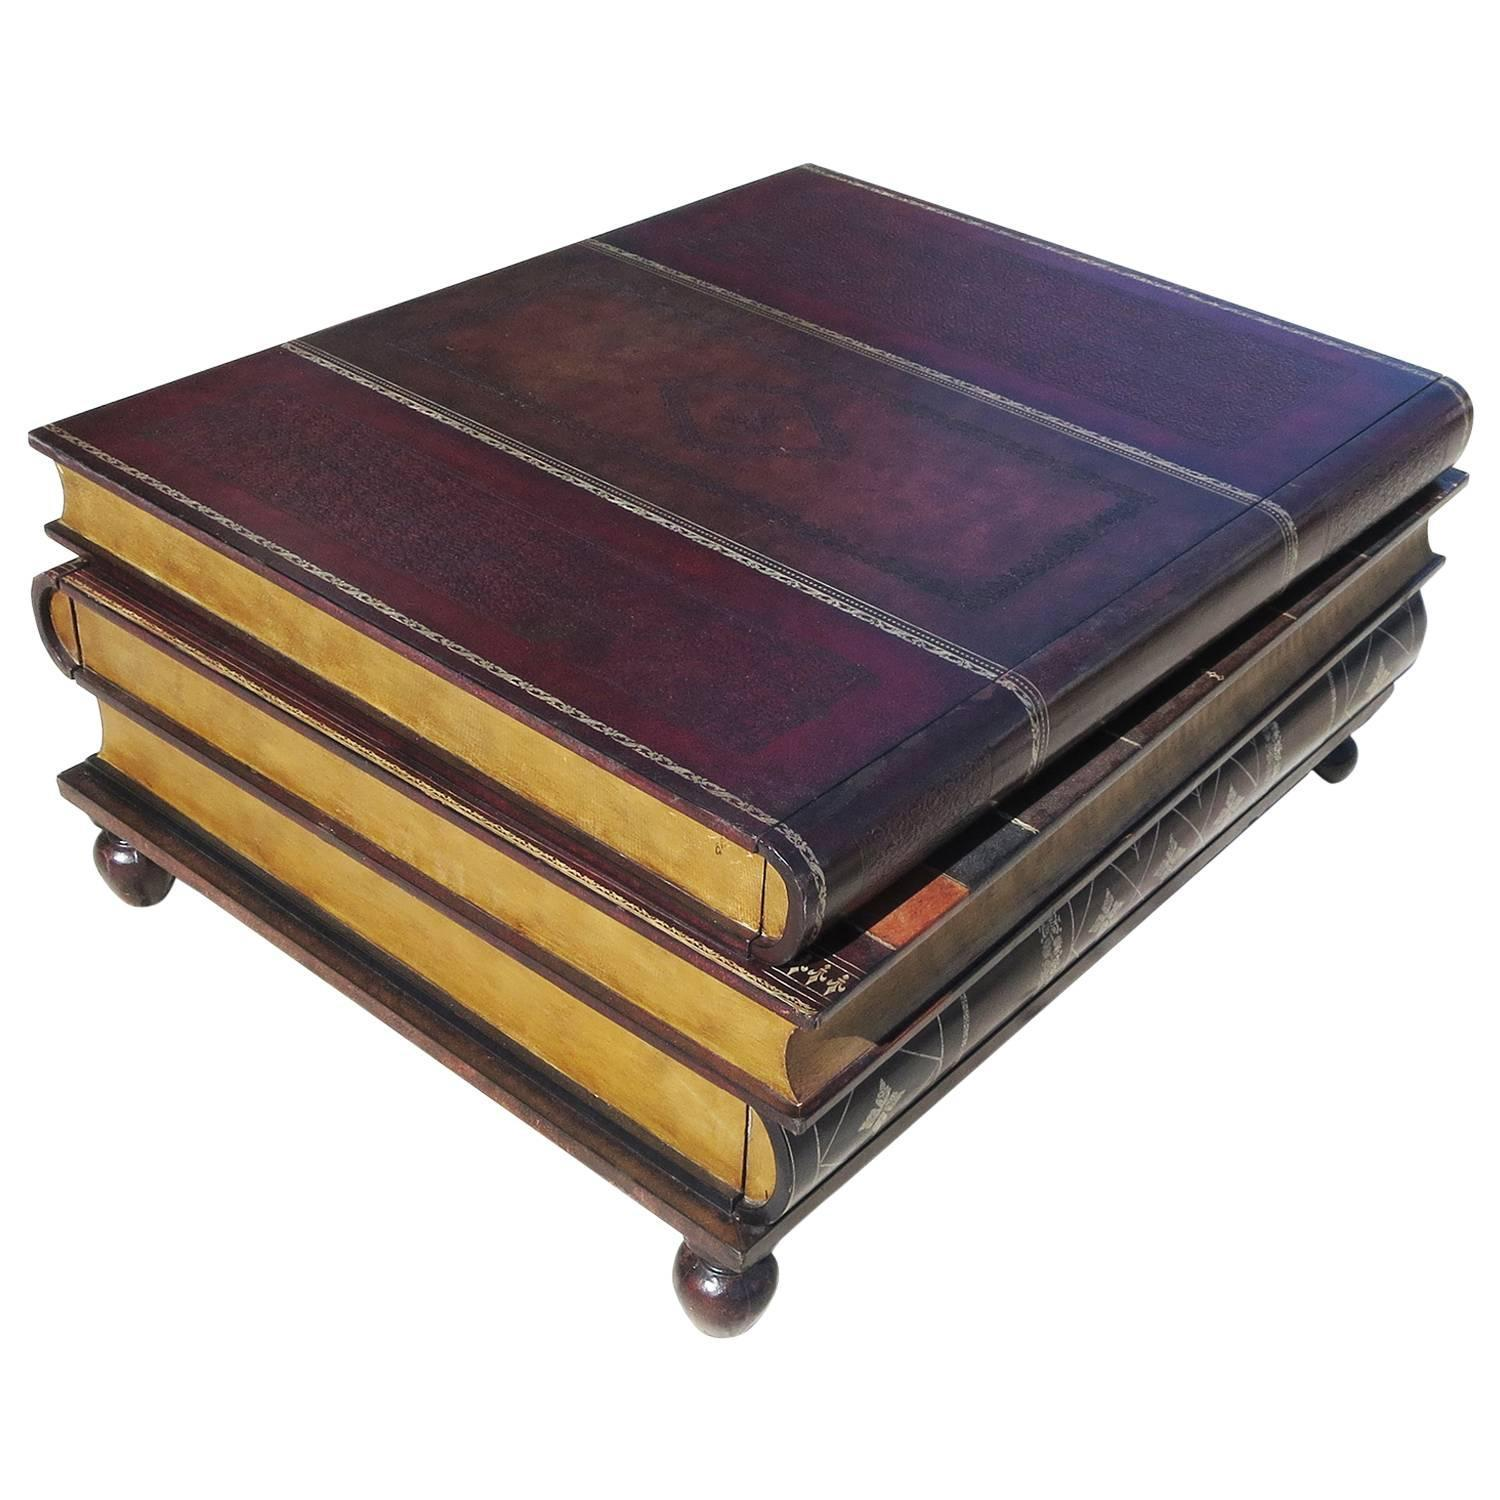 leather stacked books coffee table by maitland smith at 1stdibs. Black Bedroom Furniture Sets. Home Design Ideas